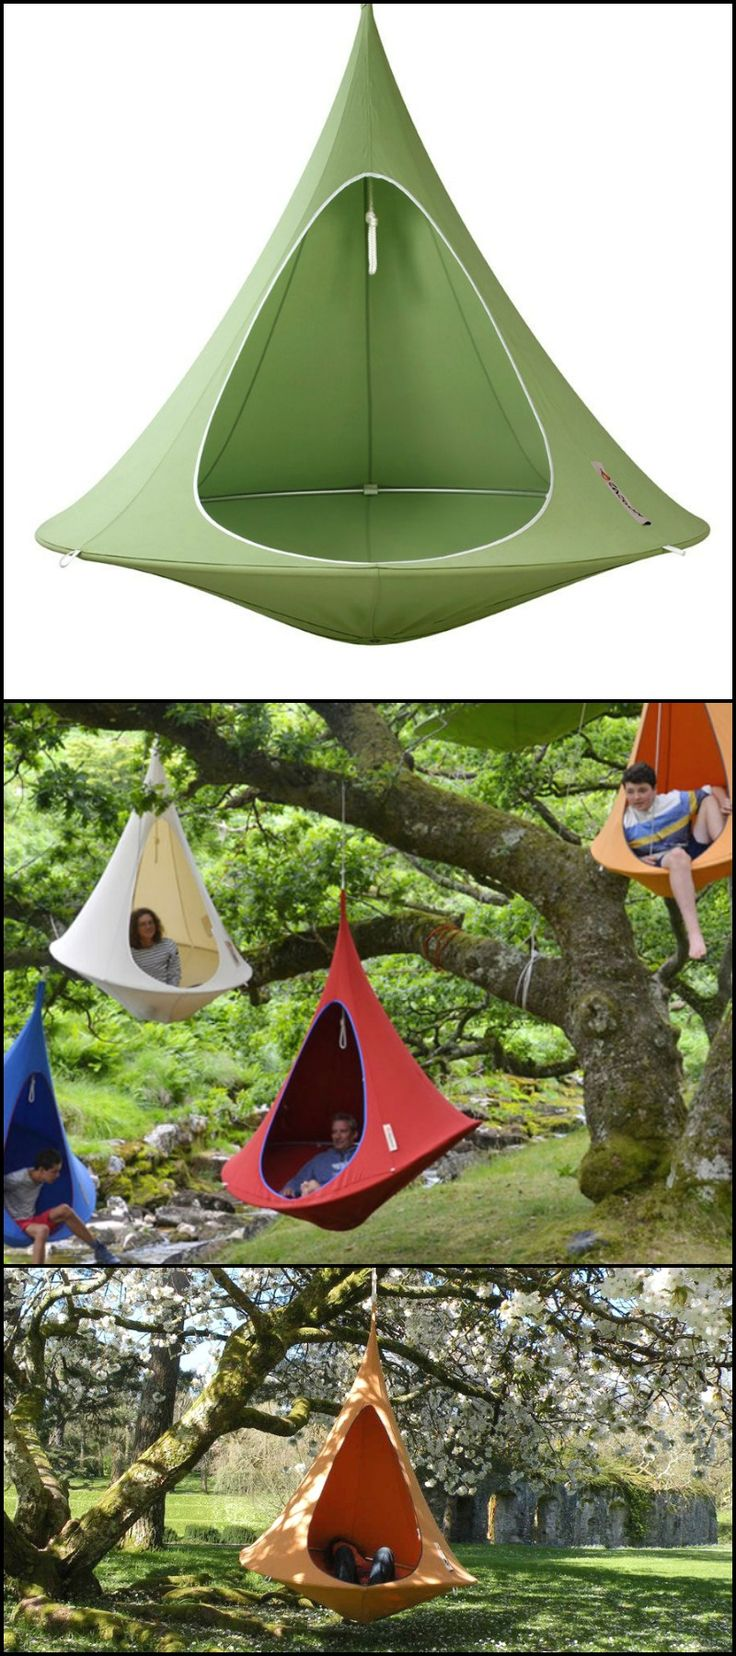 Need a good break after a crazy week at work?  http://amzn.to/1XTjBSC  This Cacoon hanging tent lets you relax in your own personal nest anytime, anywhere!  It is made with cotton and polyester blend canvas treated for UV rays and water resistance, strong nylon ropes and anodised aluminium ring.  It's easy to suspend and safe for both adults and kids. Definitely a great way to have some peace and quiet while having a bird's eye view of your beautiful surroundings.